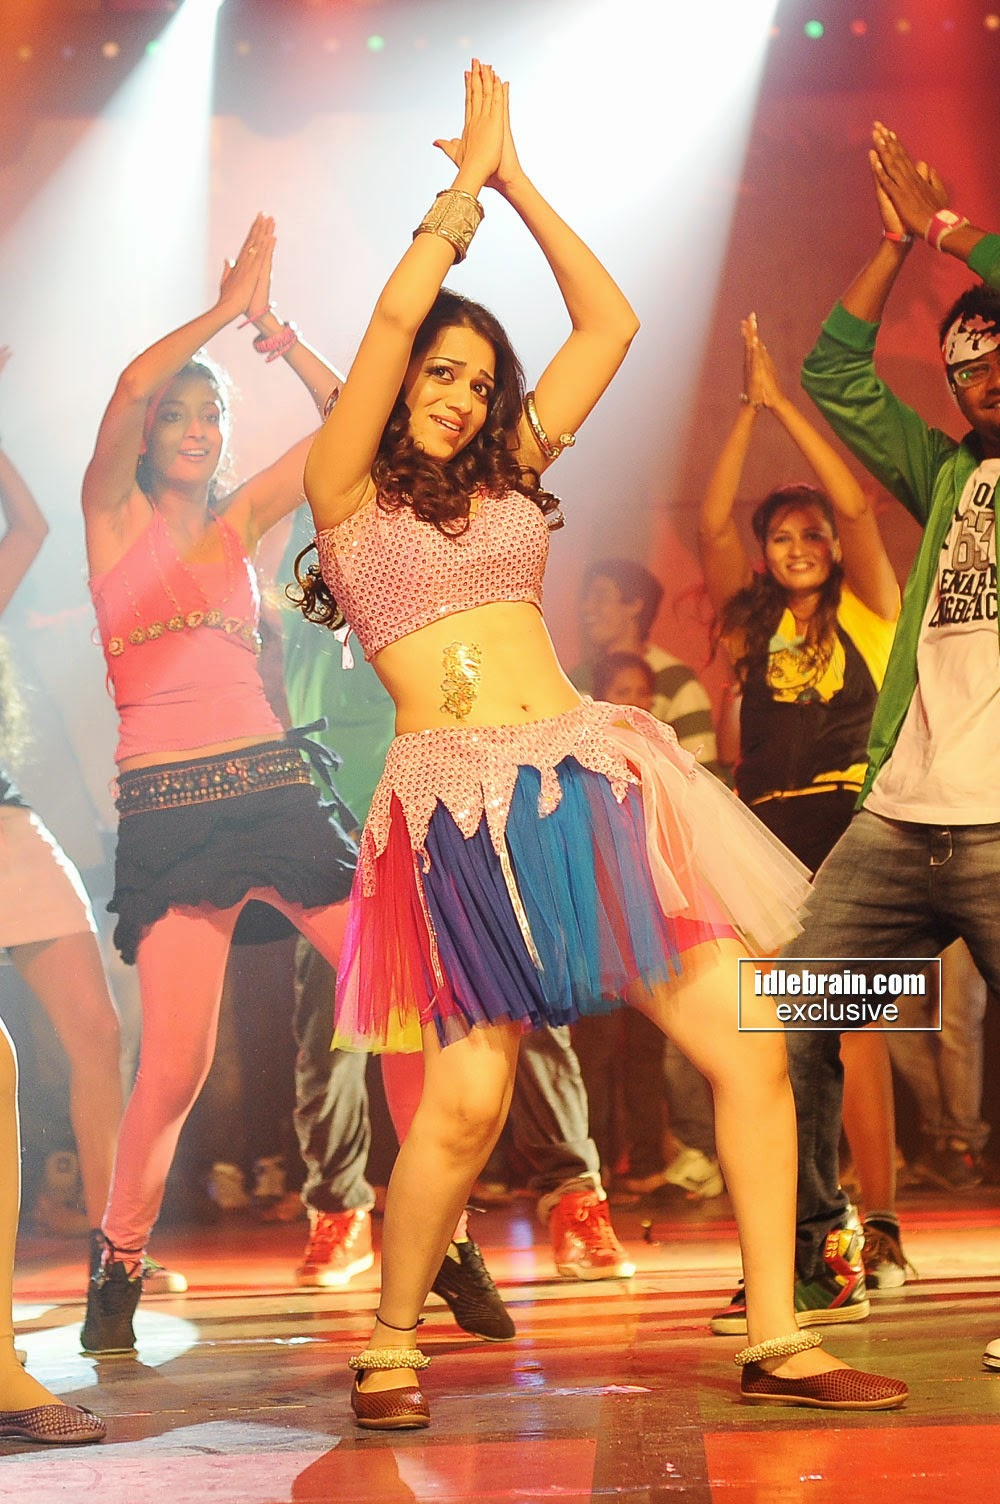 reshma mini skirt dance